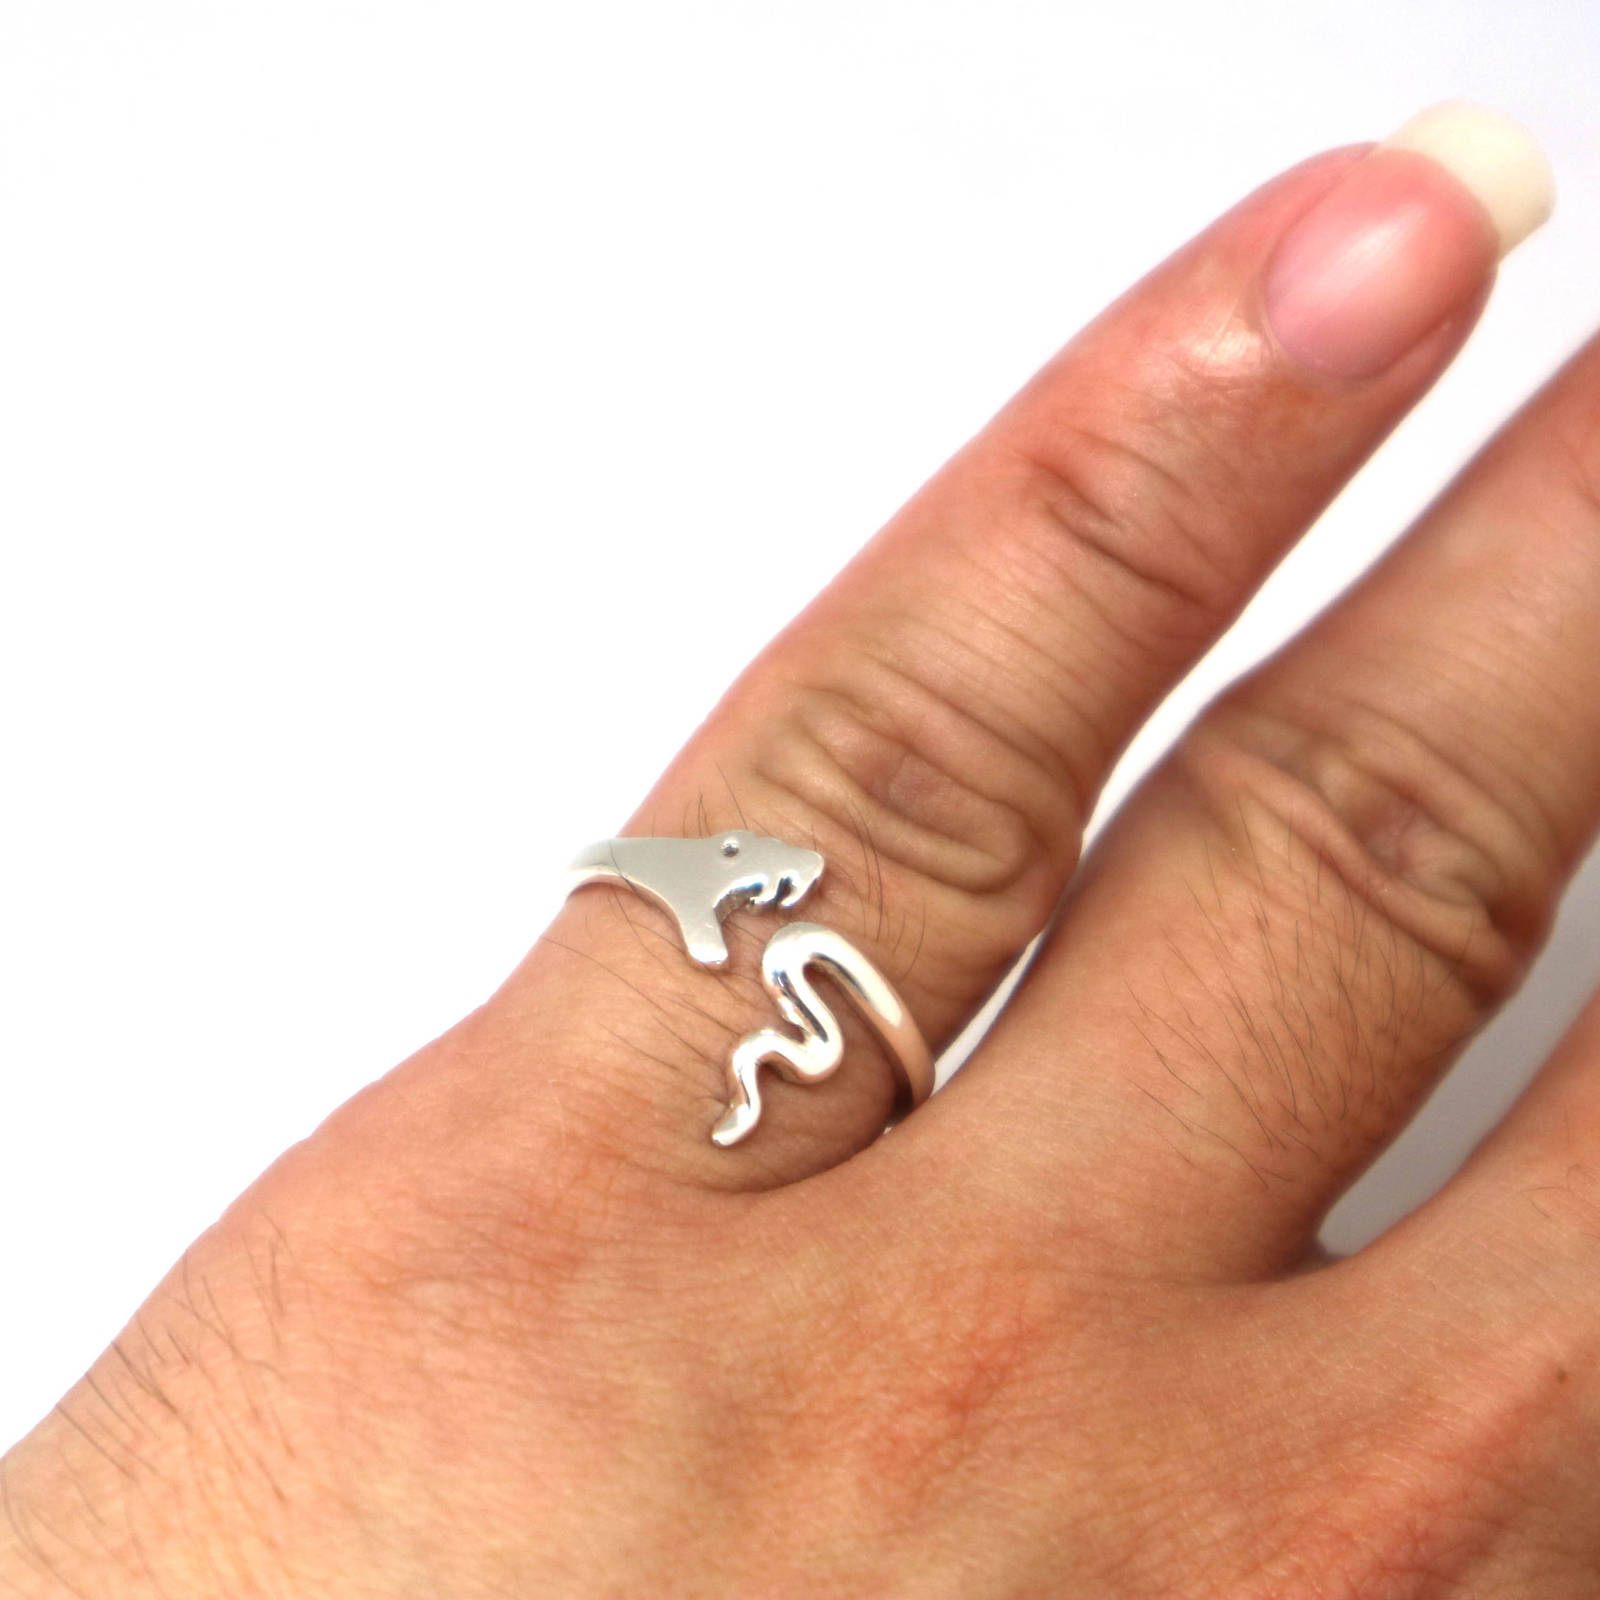 Handmade 925 Sterling Silver Snake Ring - Animal Jewelry, Size US 7 - 14